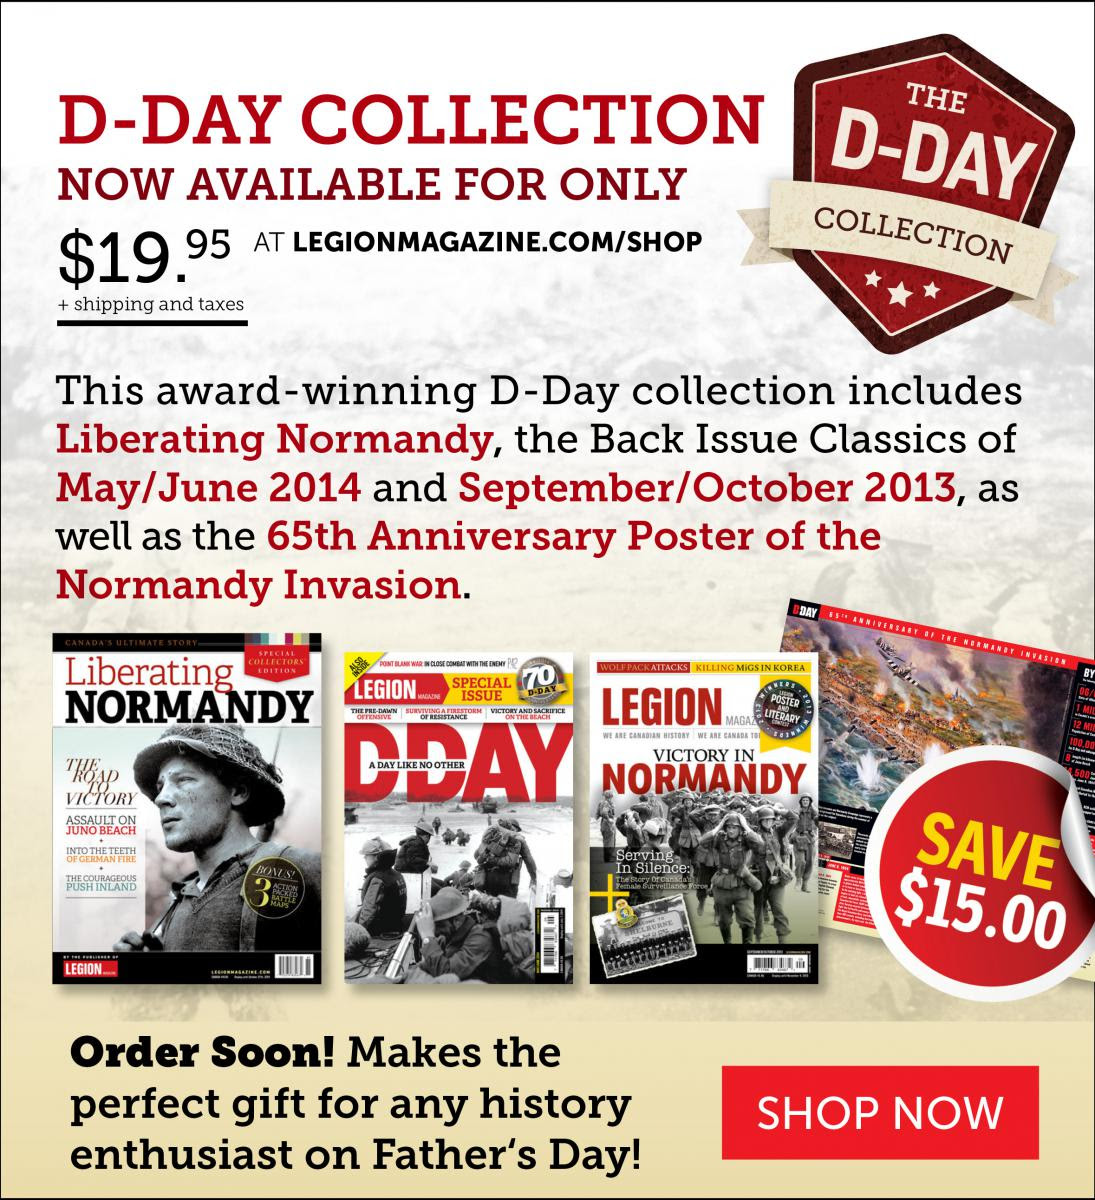 D-Day Collection Gift Pack!